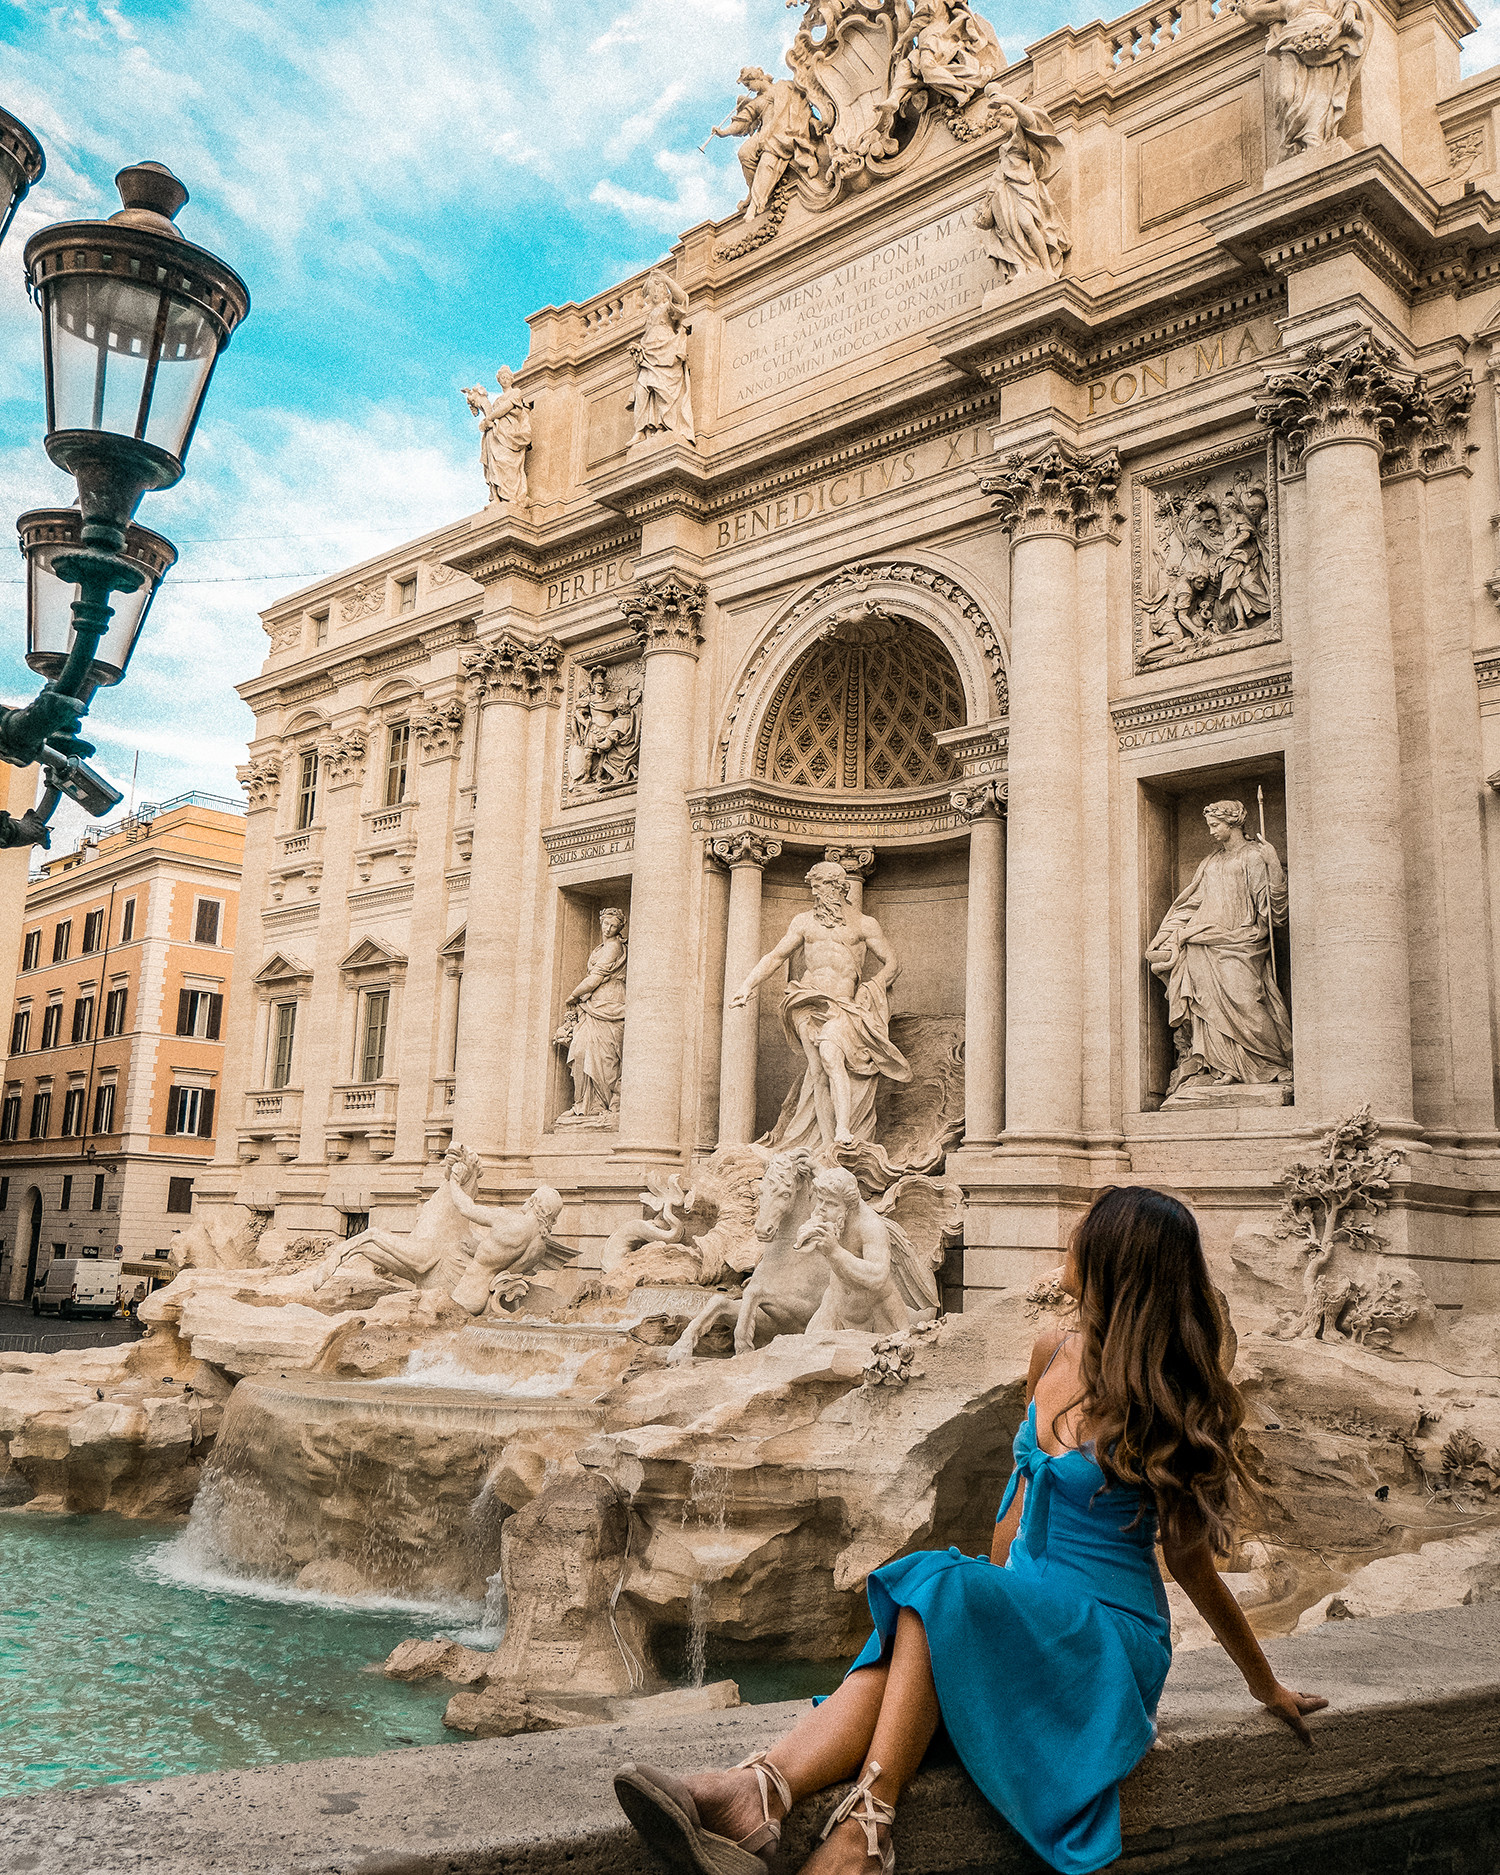 Thinking about how beautiful the Trevi Fountain is